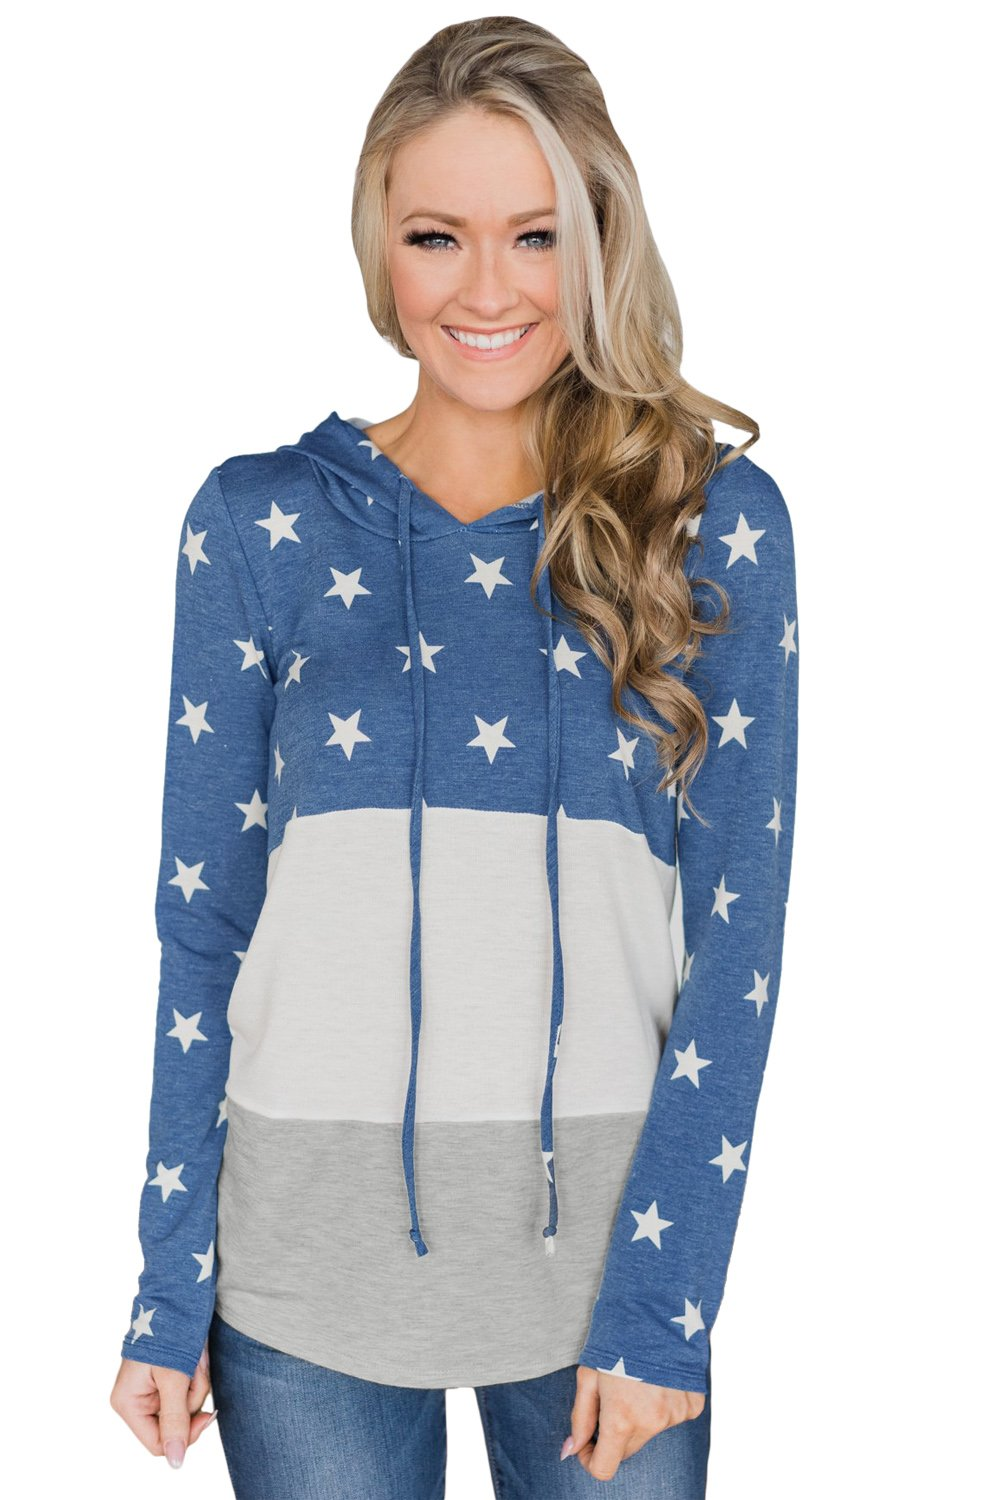 Navy Starry Splice Colorblock Drawstring Hoodie